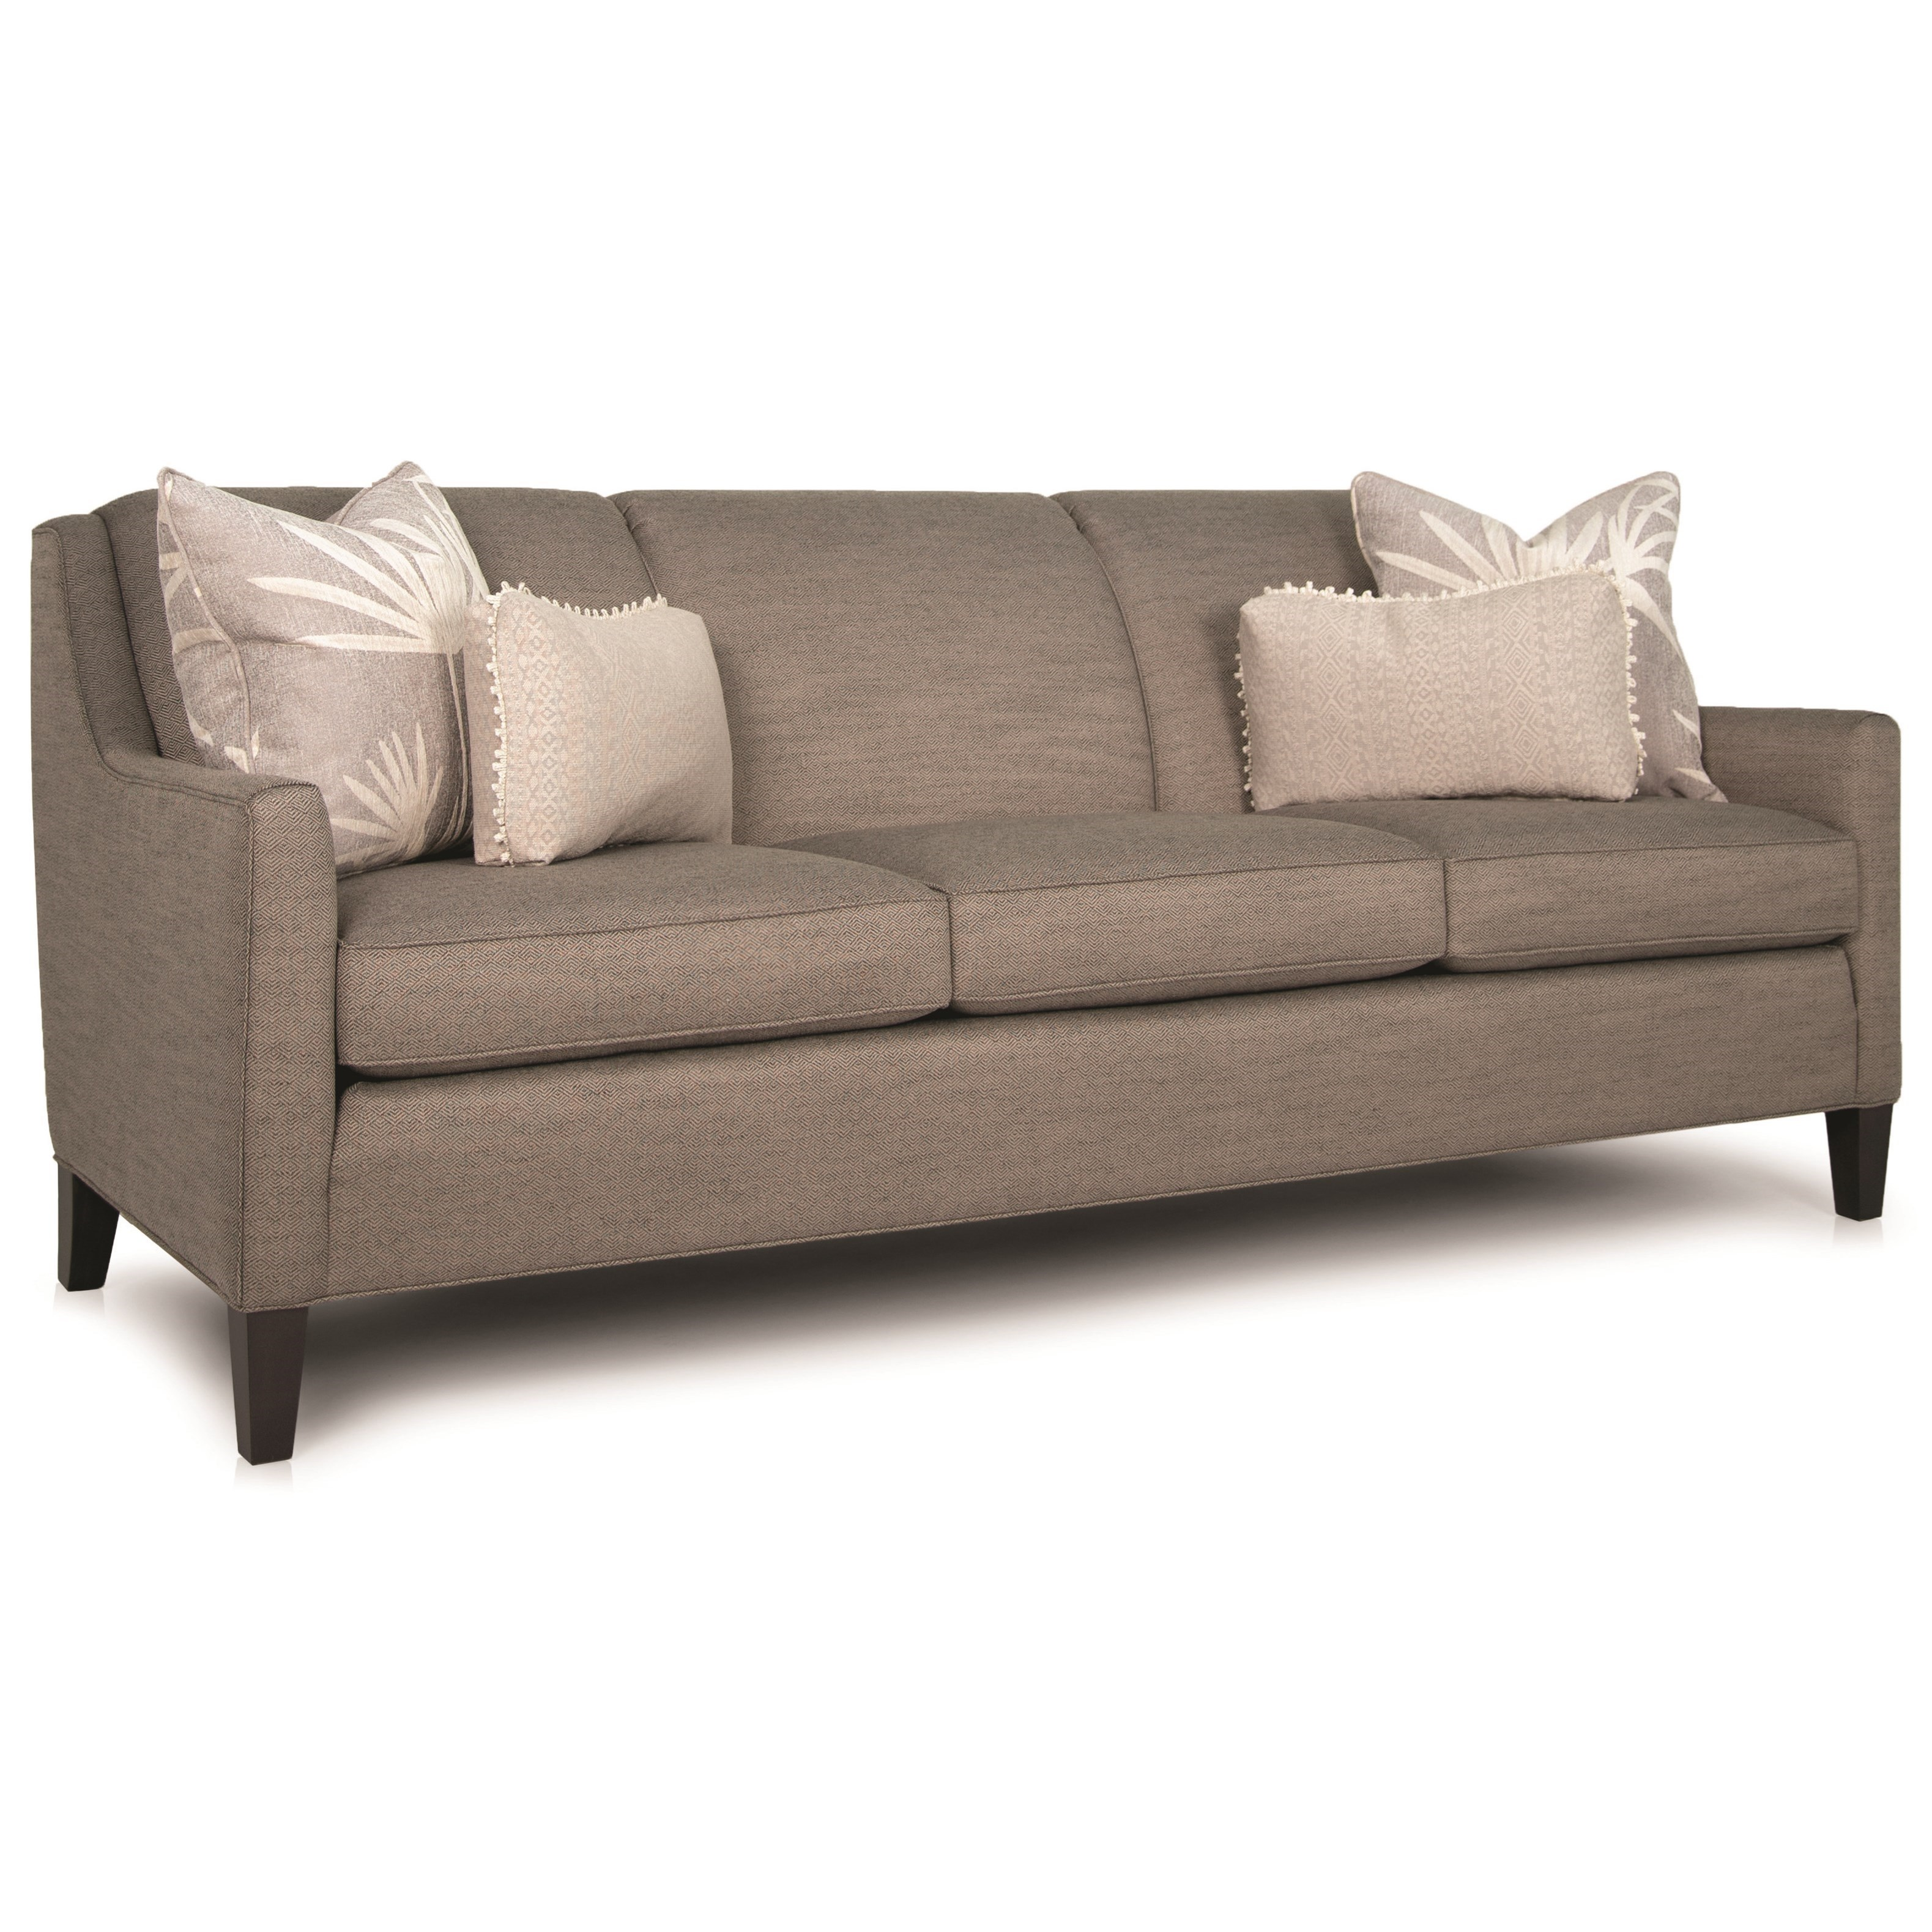 "248 74"" Sofa by Smith Brothers at Turk Furniture"